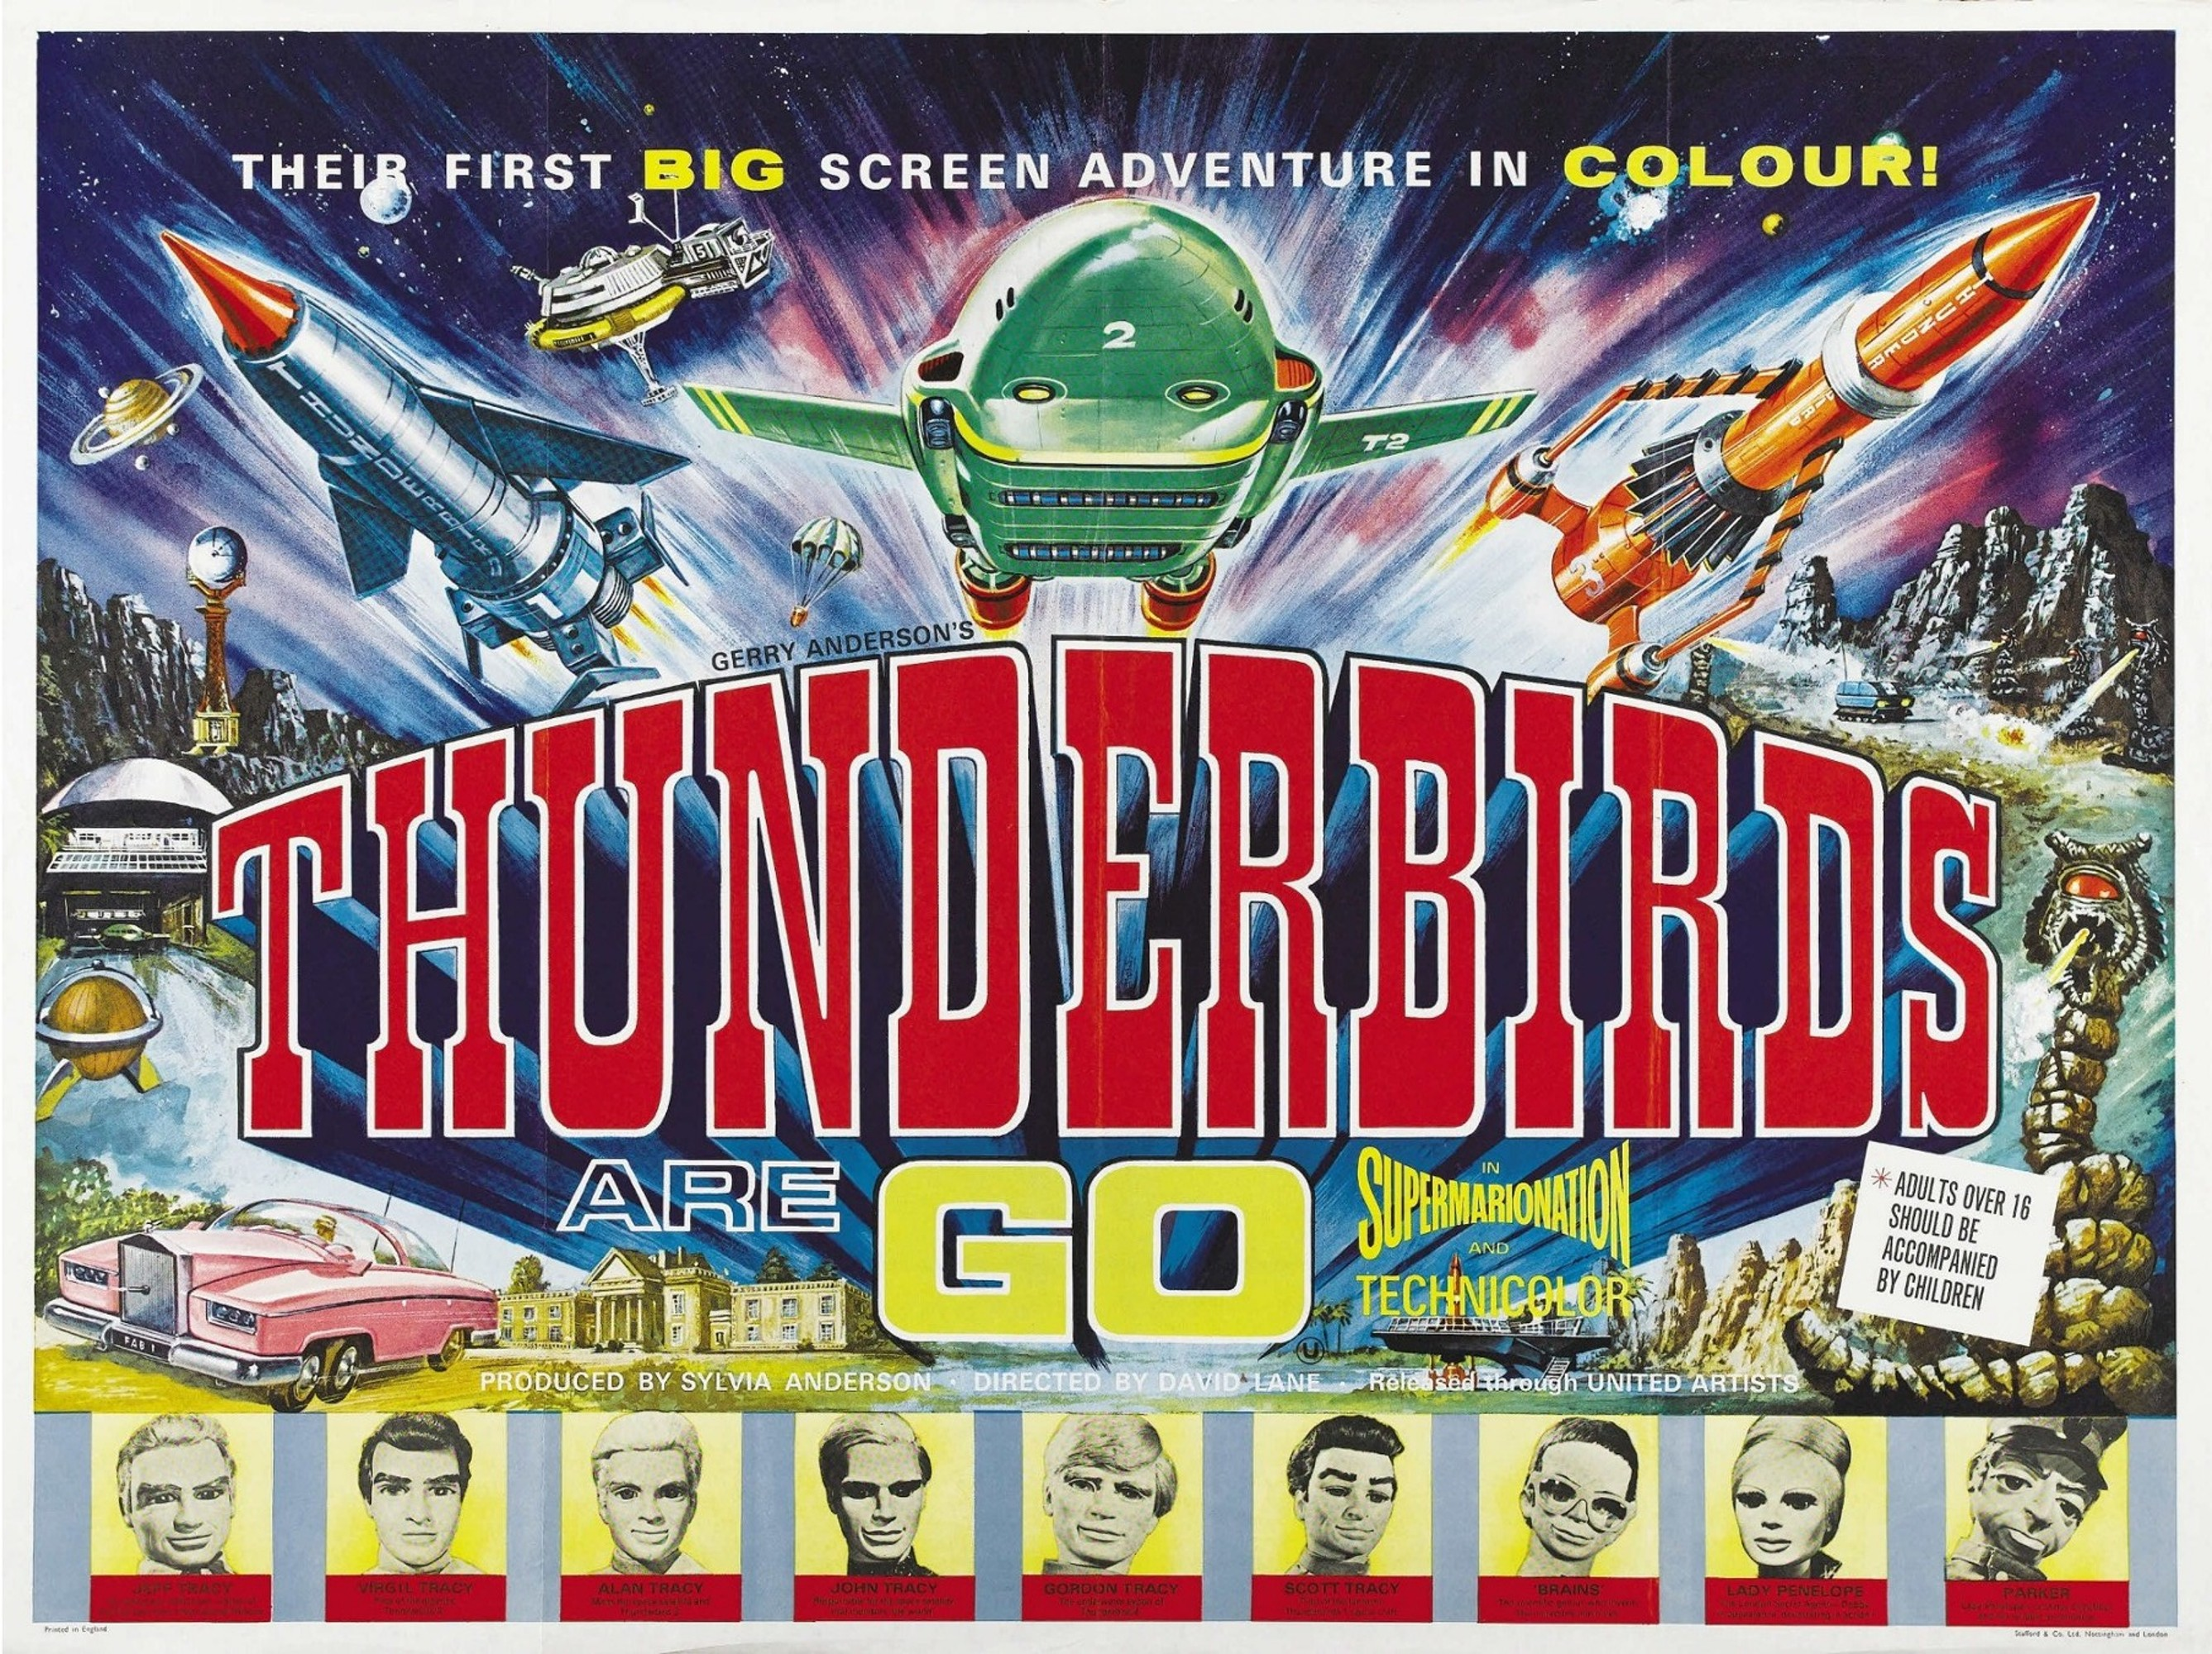 Take off or is it the thunderbirds films should have been the icing